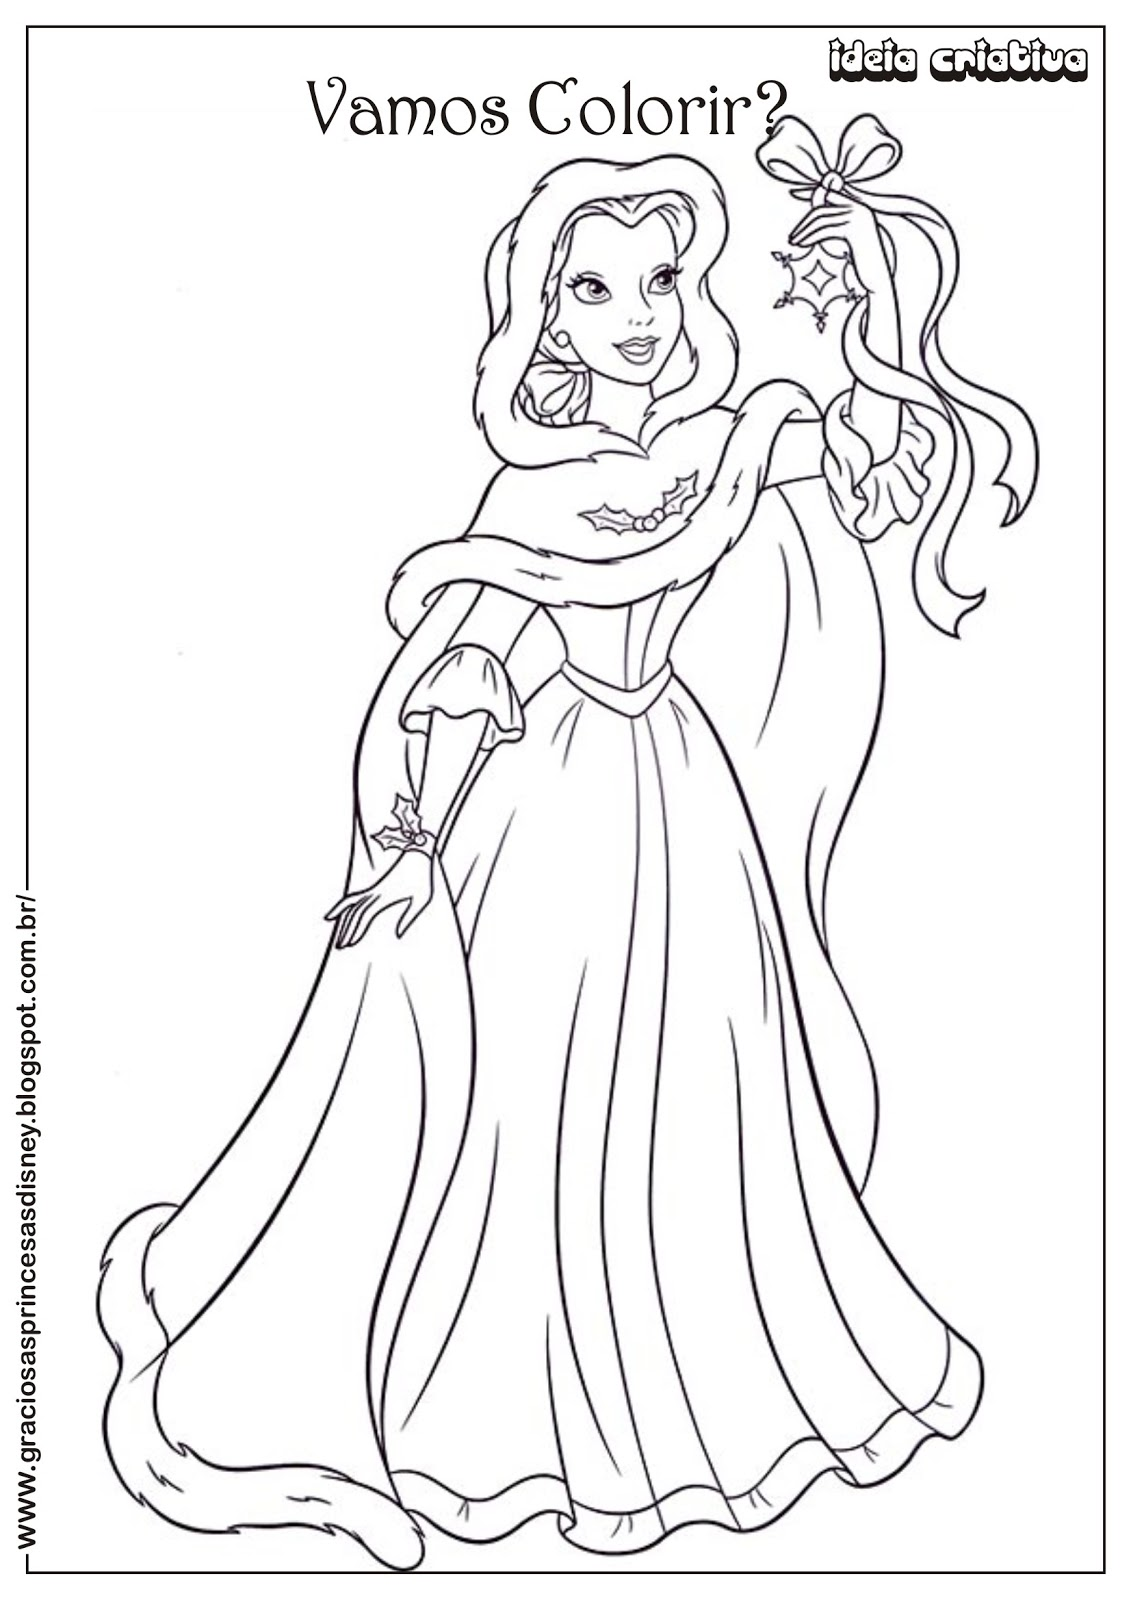 POD36 as well 2012 12 01 archive likewise 2012 08 01 archive as well 2012 04 01 archive additionally Baby Jesus Coloring Pages For Kids. on 2012 08 01 archive